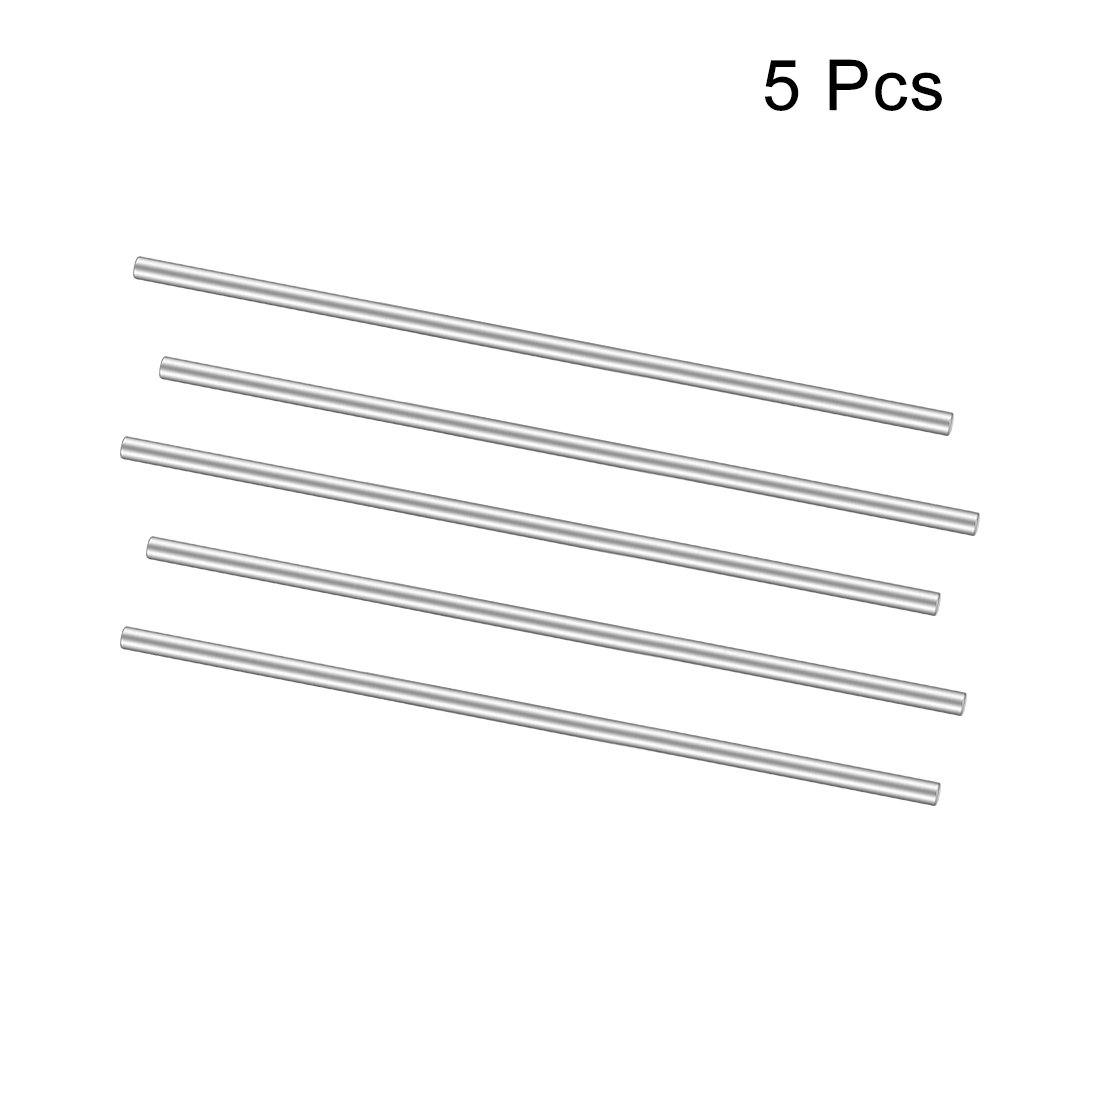 sourcing map Stainless Steel Solid Round Rods Metal Lathe Bar Stock for DIY Craft 100mmx2mm 25pcs